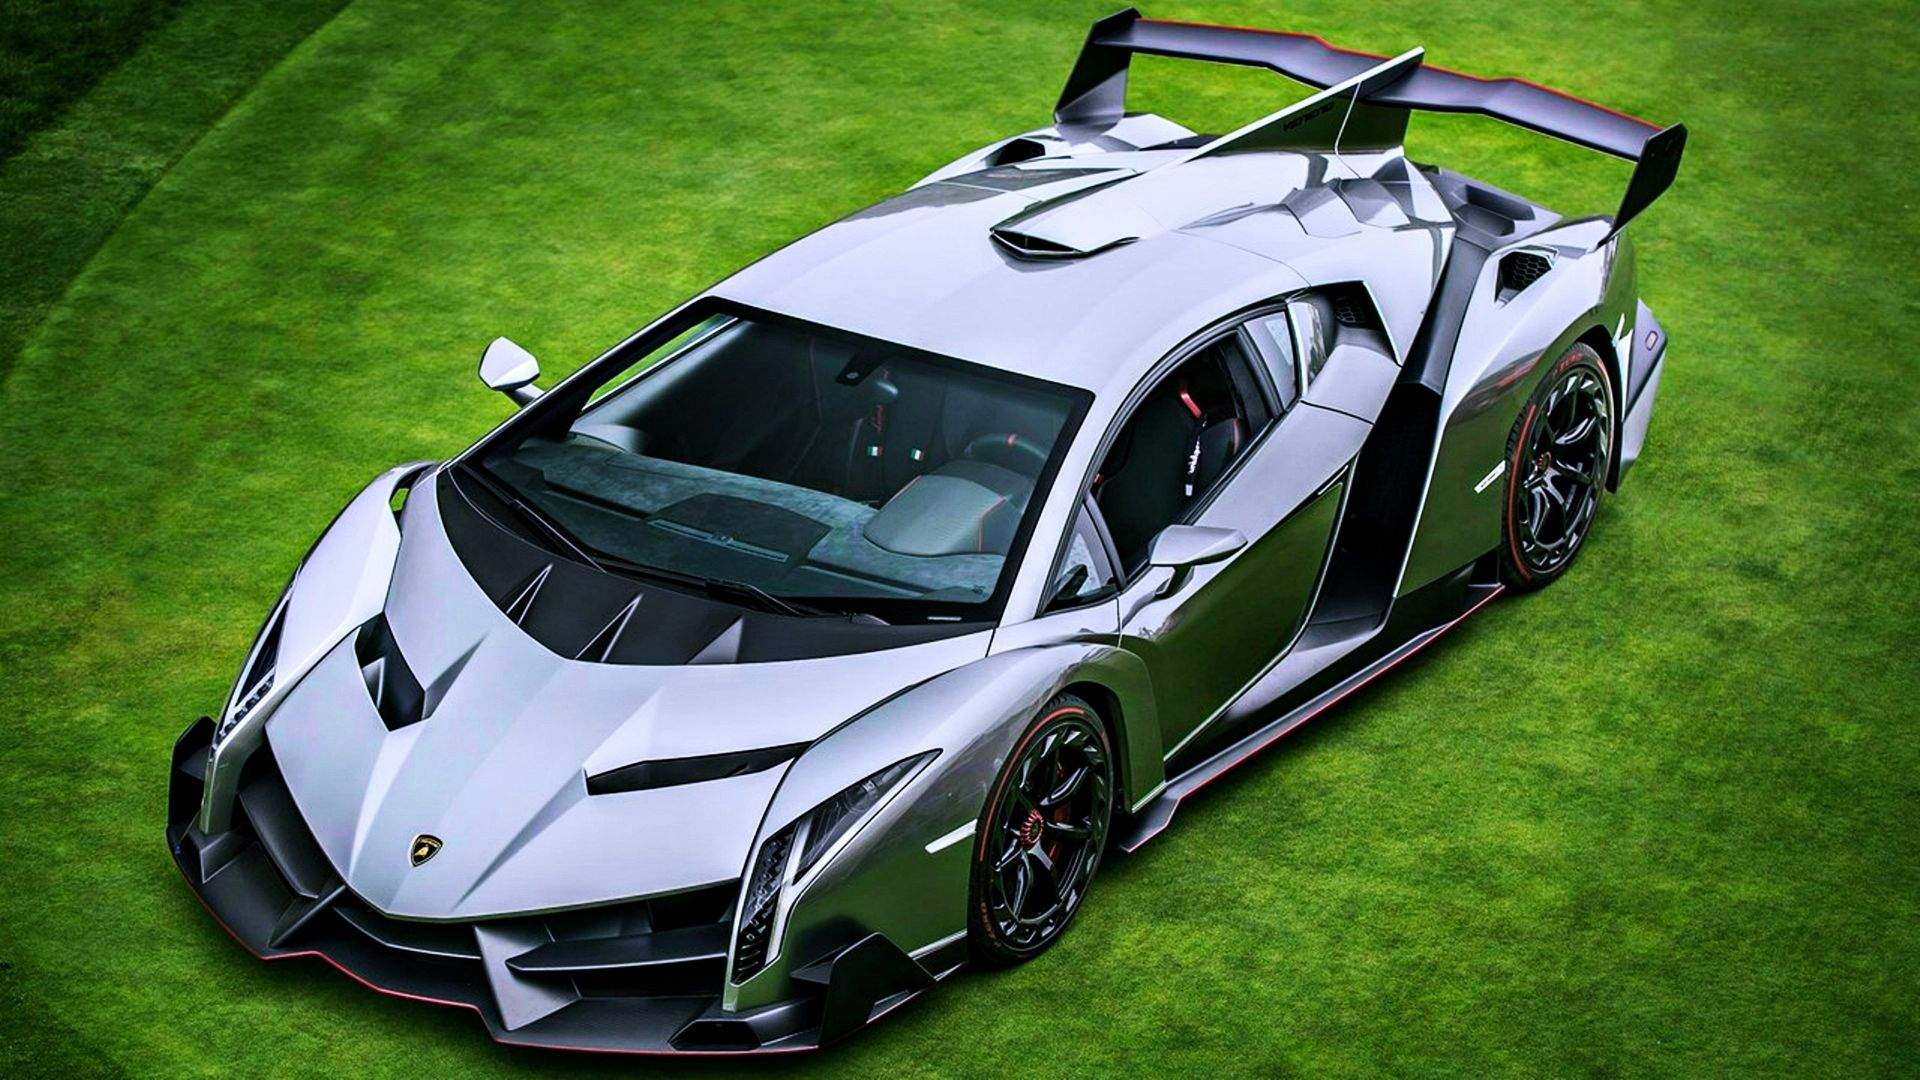 Wallpaper Lamborghini Veneno Supercar Concept Car Cars Amp Bikes 7428